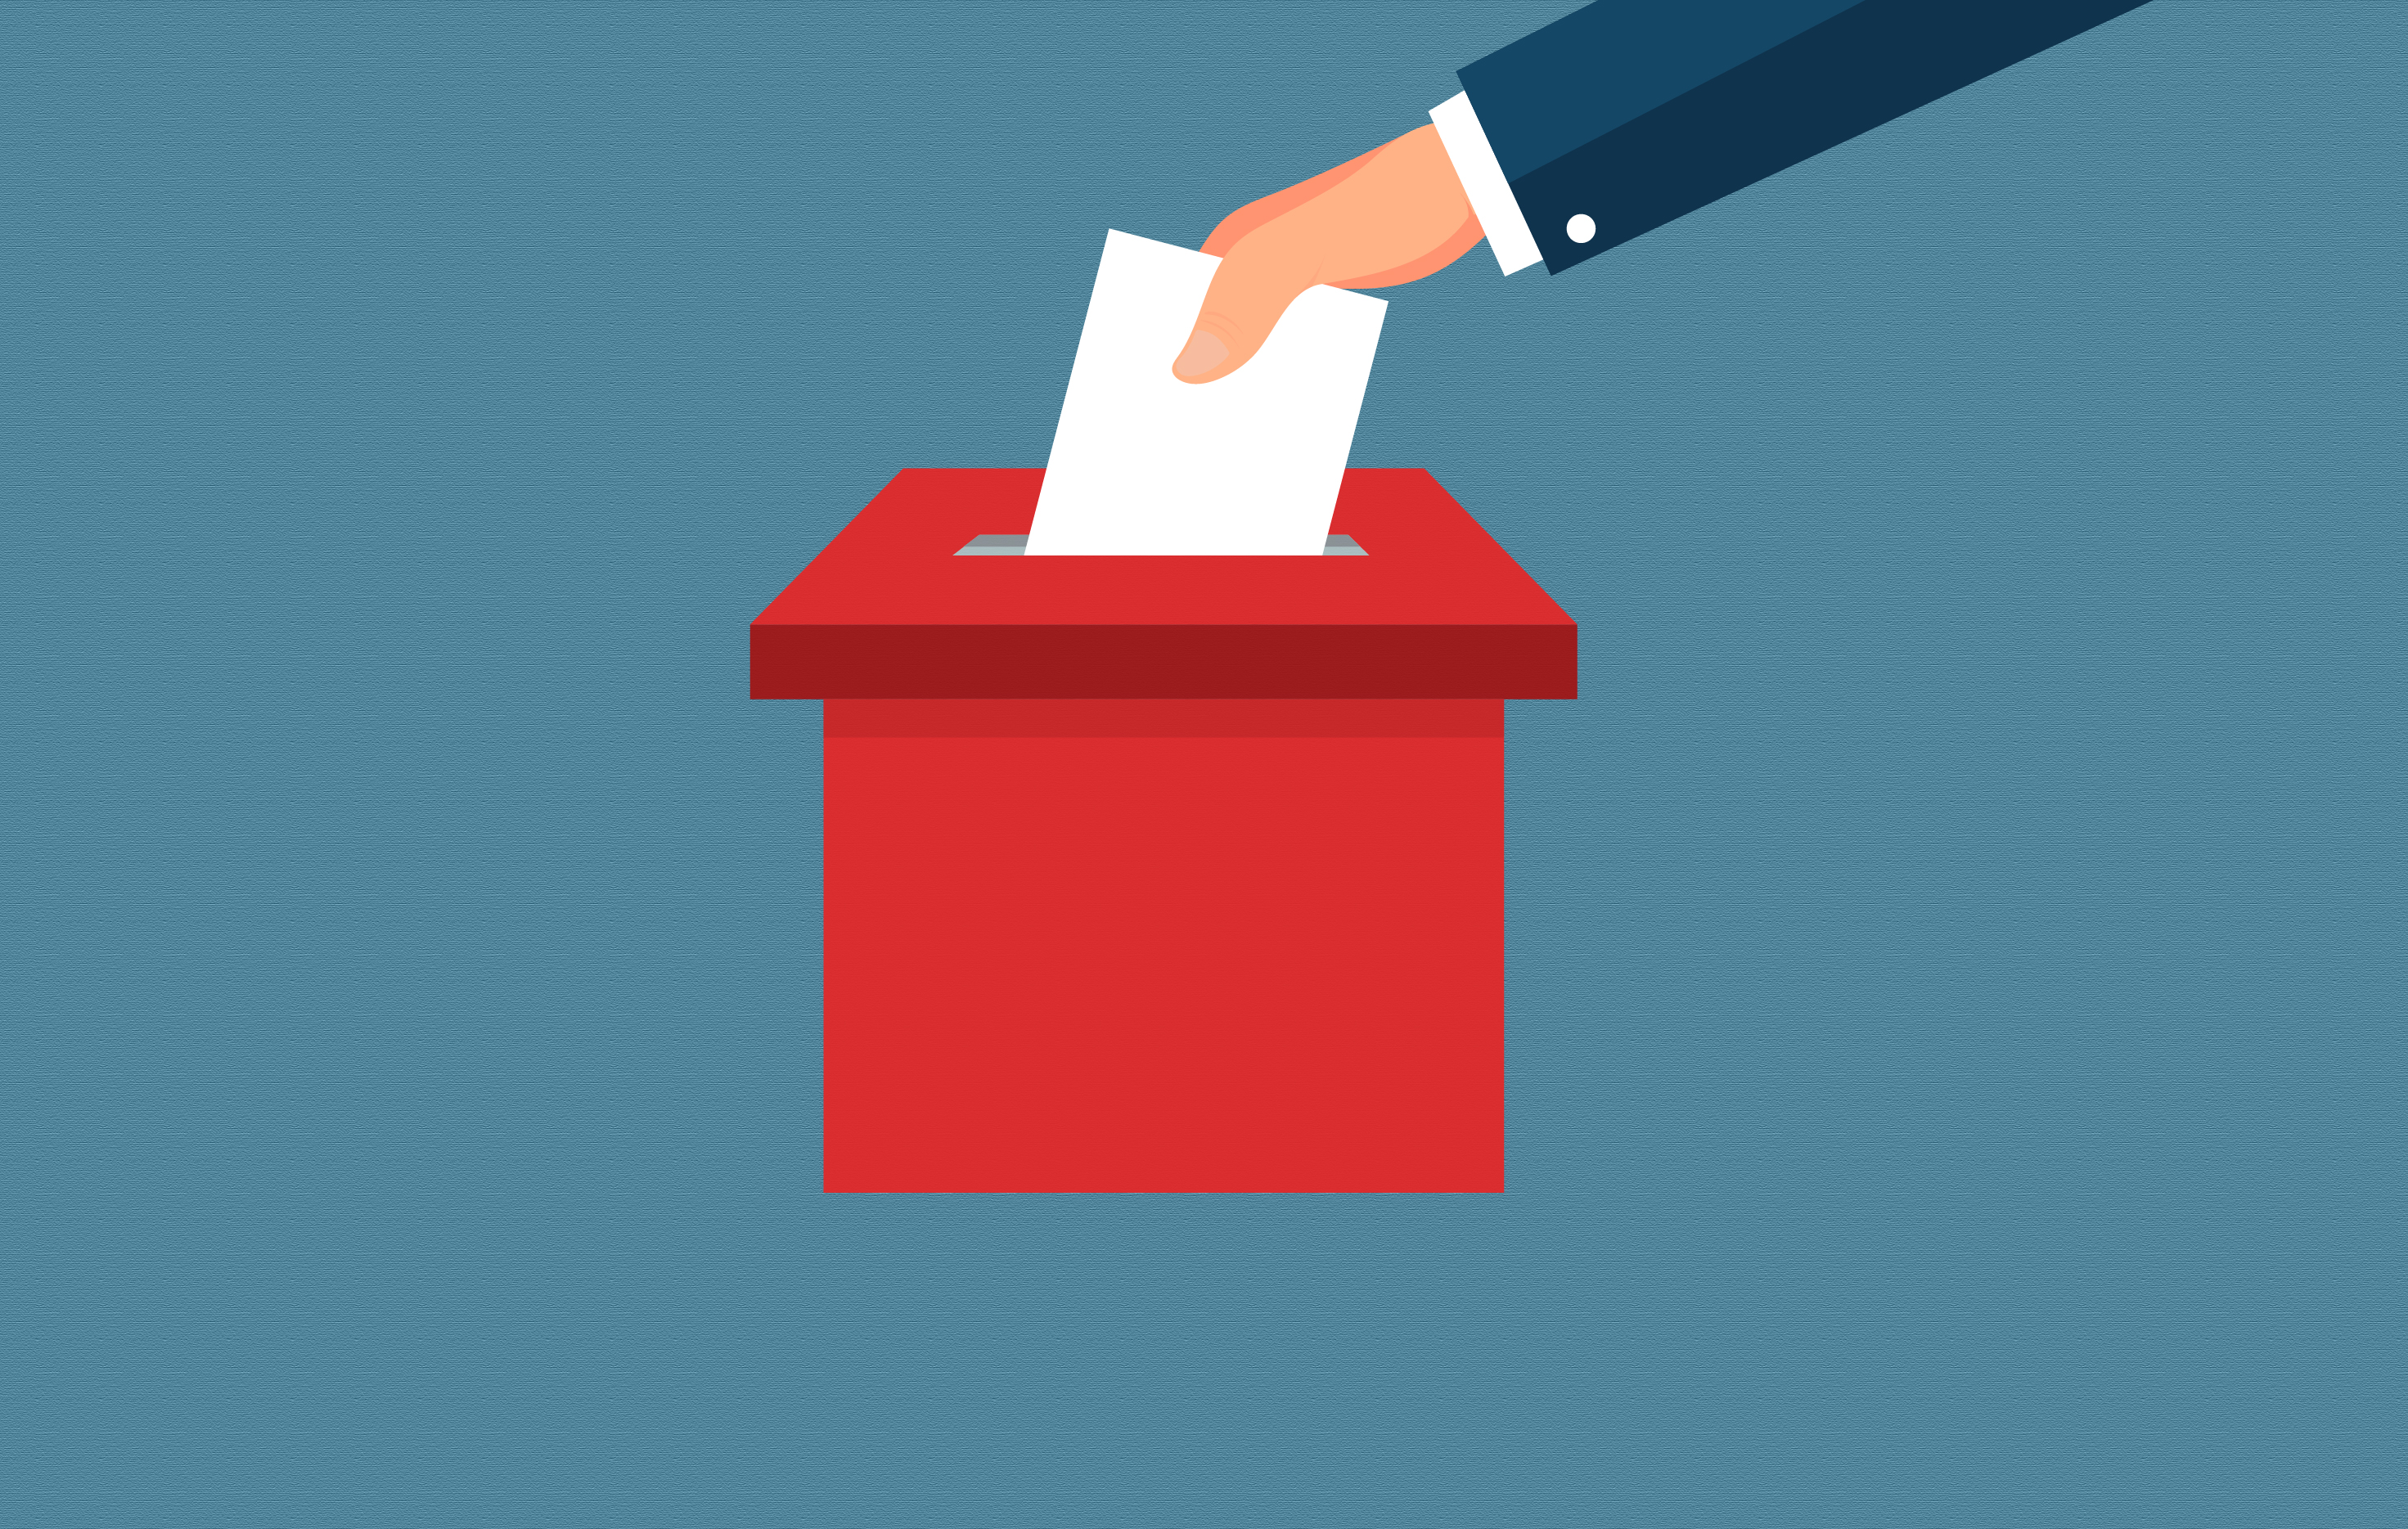 Impact of COVID 19 on electoral processes around the world